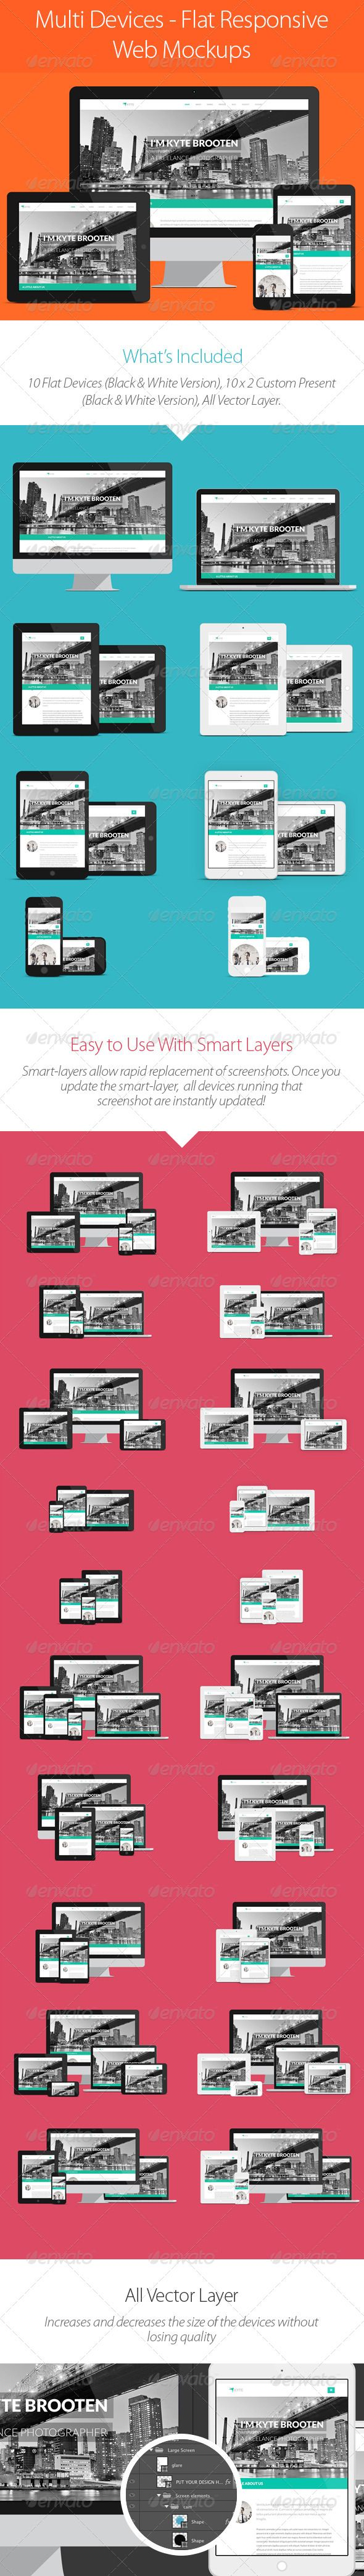 Multi Devices  Flat Responsive Web Mockups — Photoshop PSD #device mockup psd #vector imac • Available here → https://graphicriver.net/item/multi-devices-flat-responsive-web-mockups/6158200?ref=pxcr